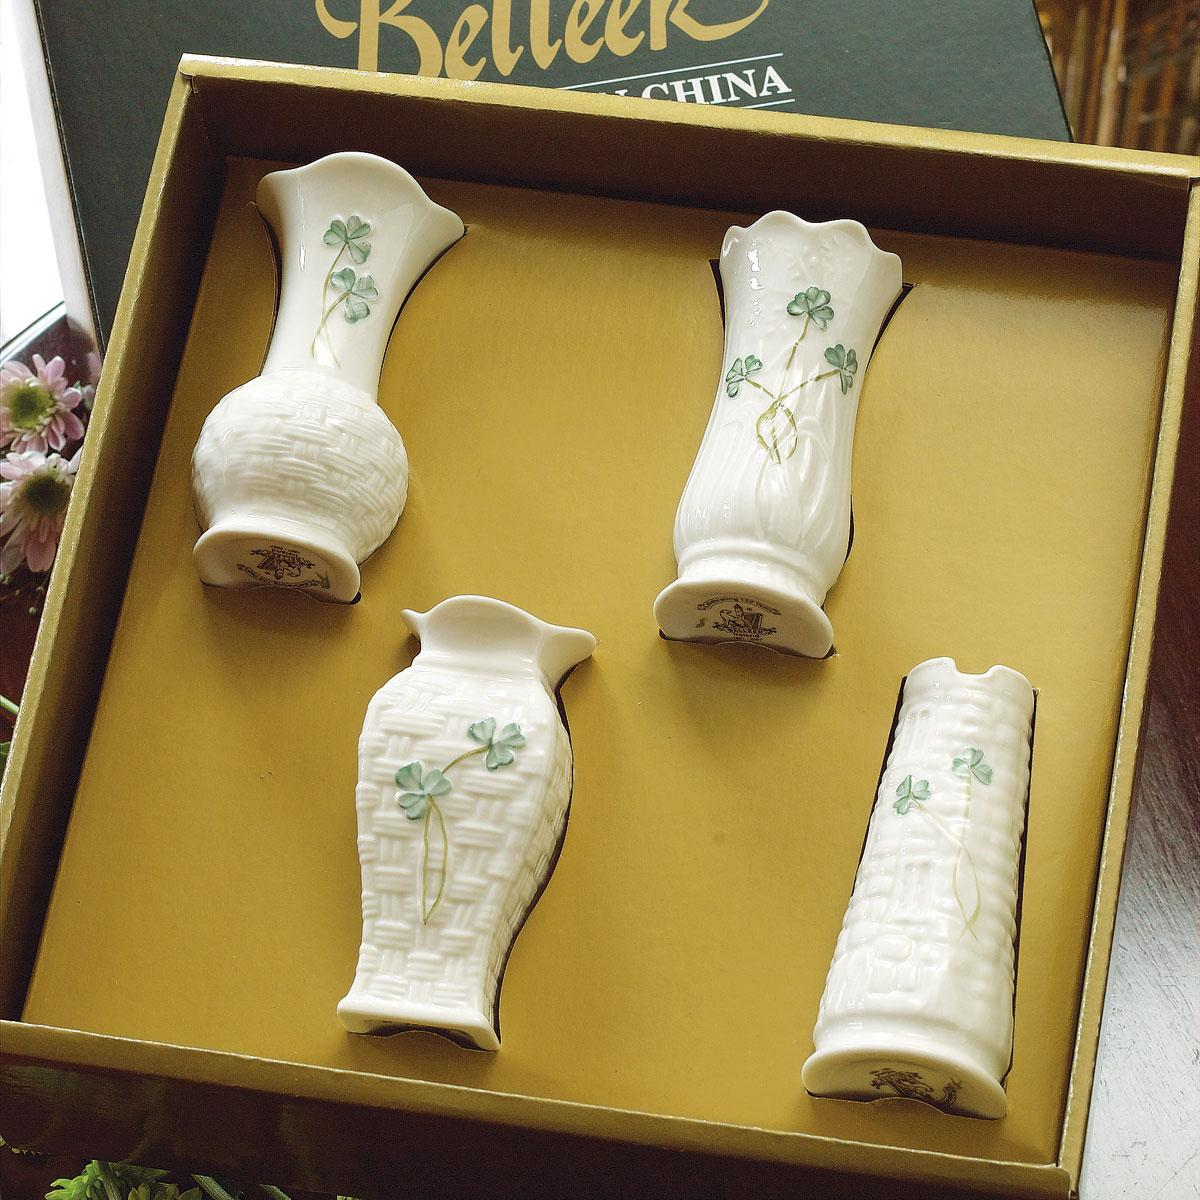 Belleek China Shamrock Mini Vases, Set of Four